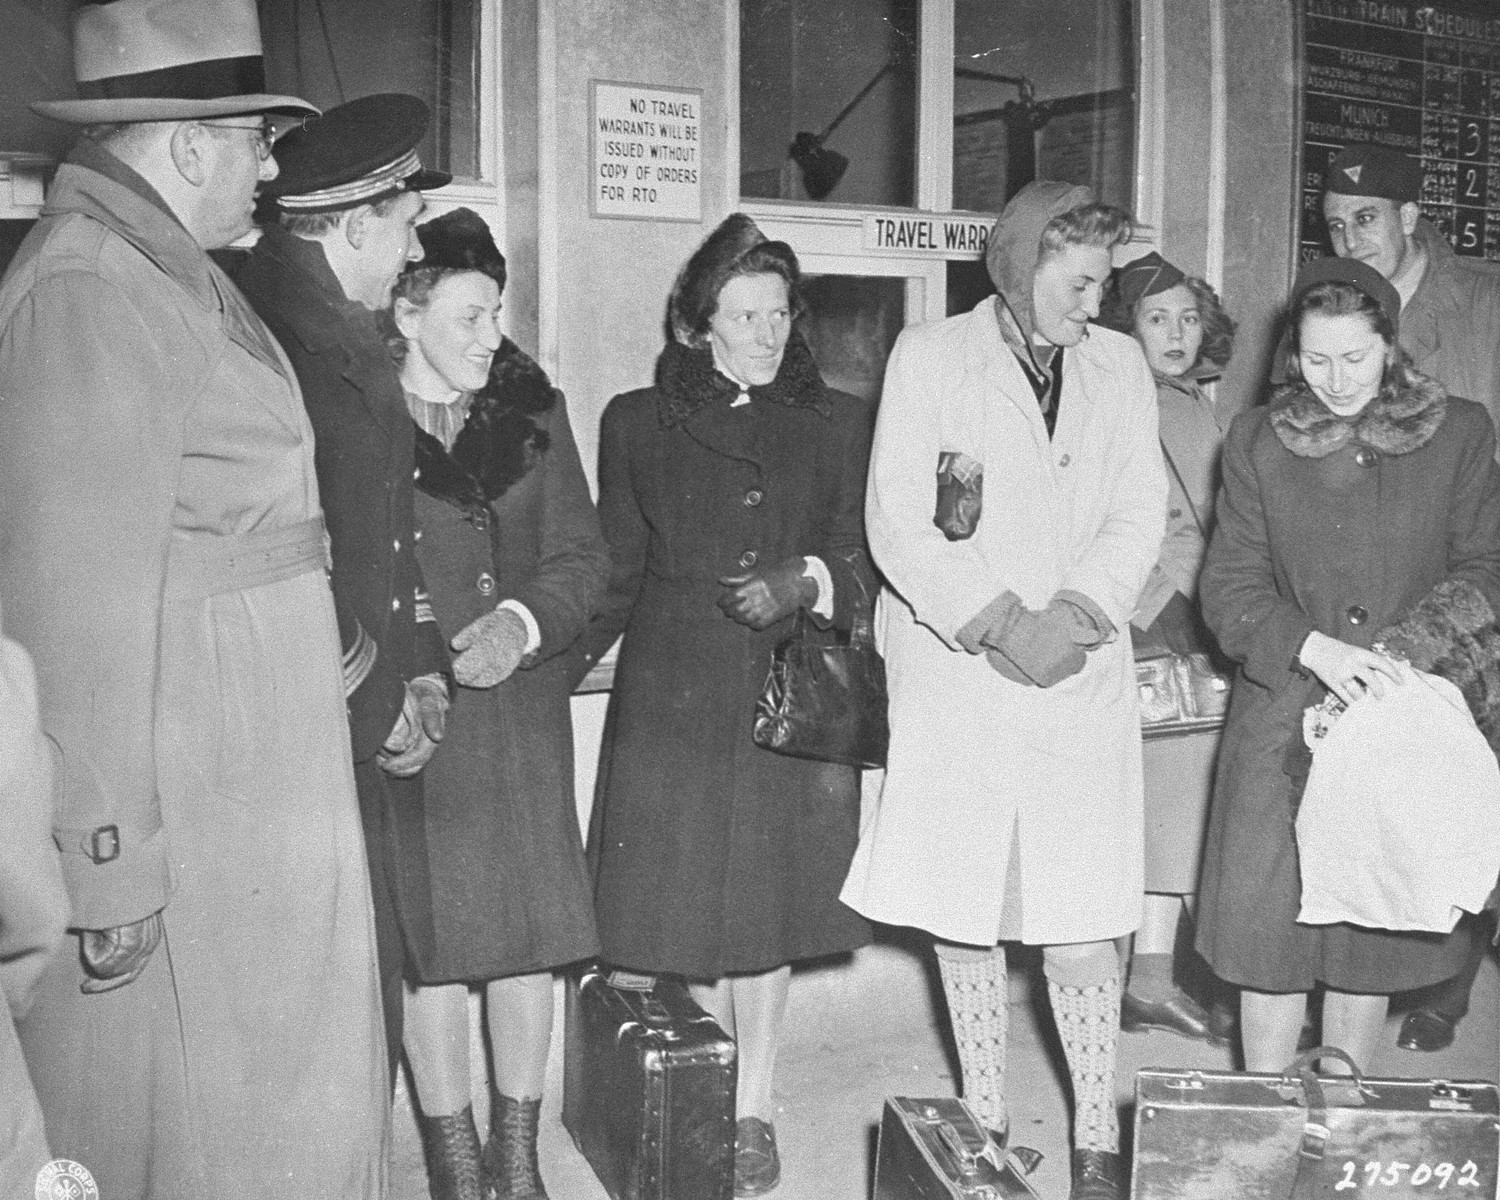 Four Polish women arrive at the train station in Nuremberg to be prosecution witnesses at the Doctors Trial.    From left to right are Jadwiga Dzido (Hassa), Maria Broel-Plater (Skassa),  Maria Kusmierczuk and Wladislava Karolewska.